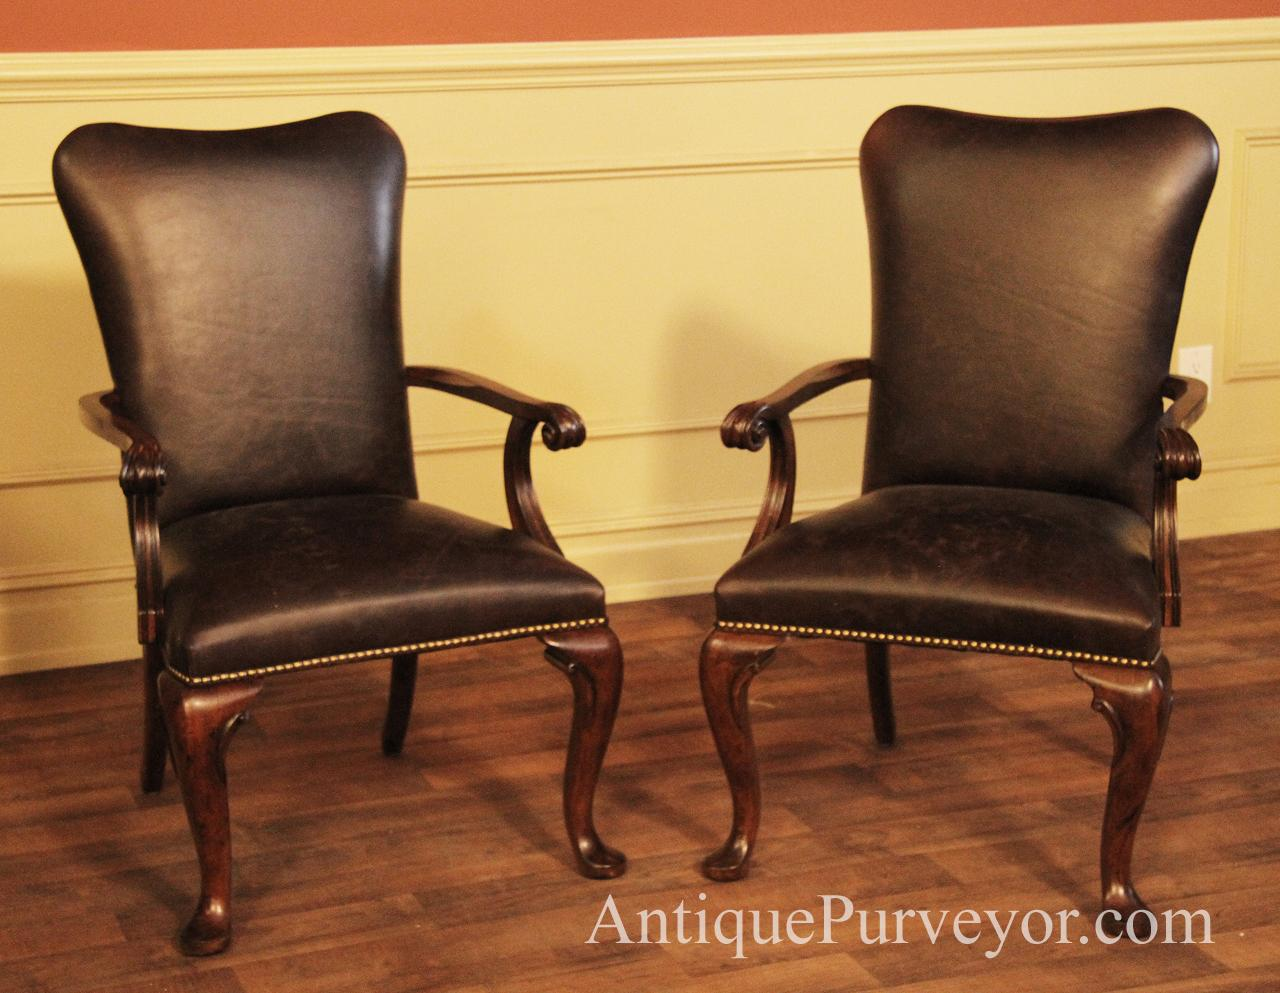 Queen Anne Leather Arm Chairs With Camel Back And Br Nail Trim